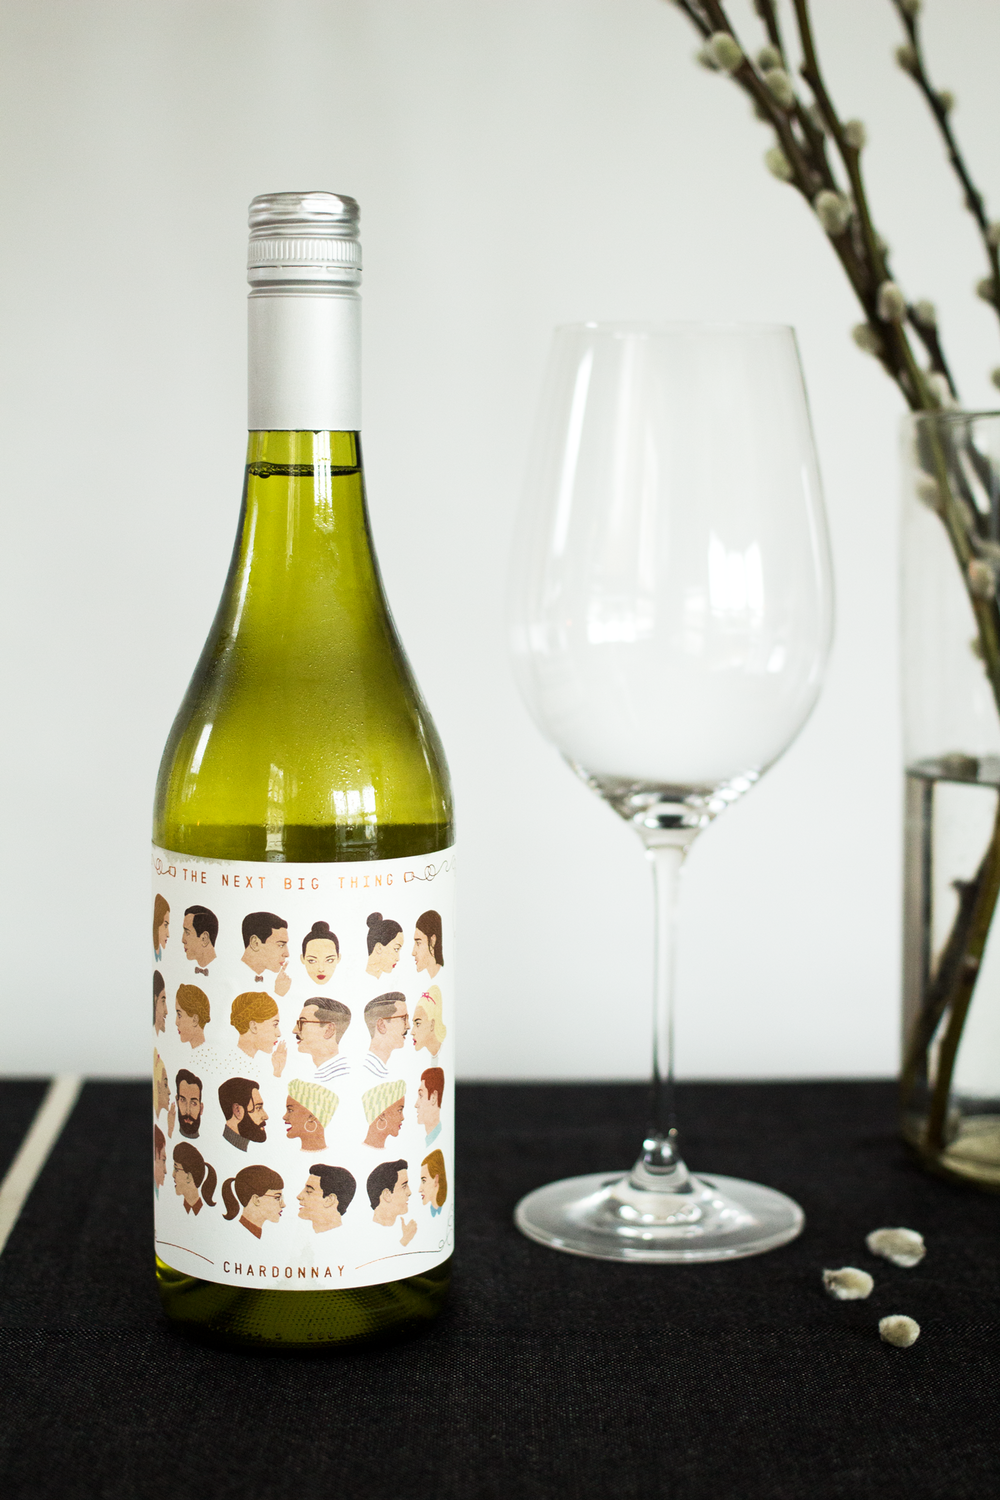 Bottle-Bitches-Review-Australian-Chardonnay-Magpie-Estate-The-Next-Big-Thing-Chardonnay-2015.png